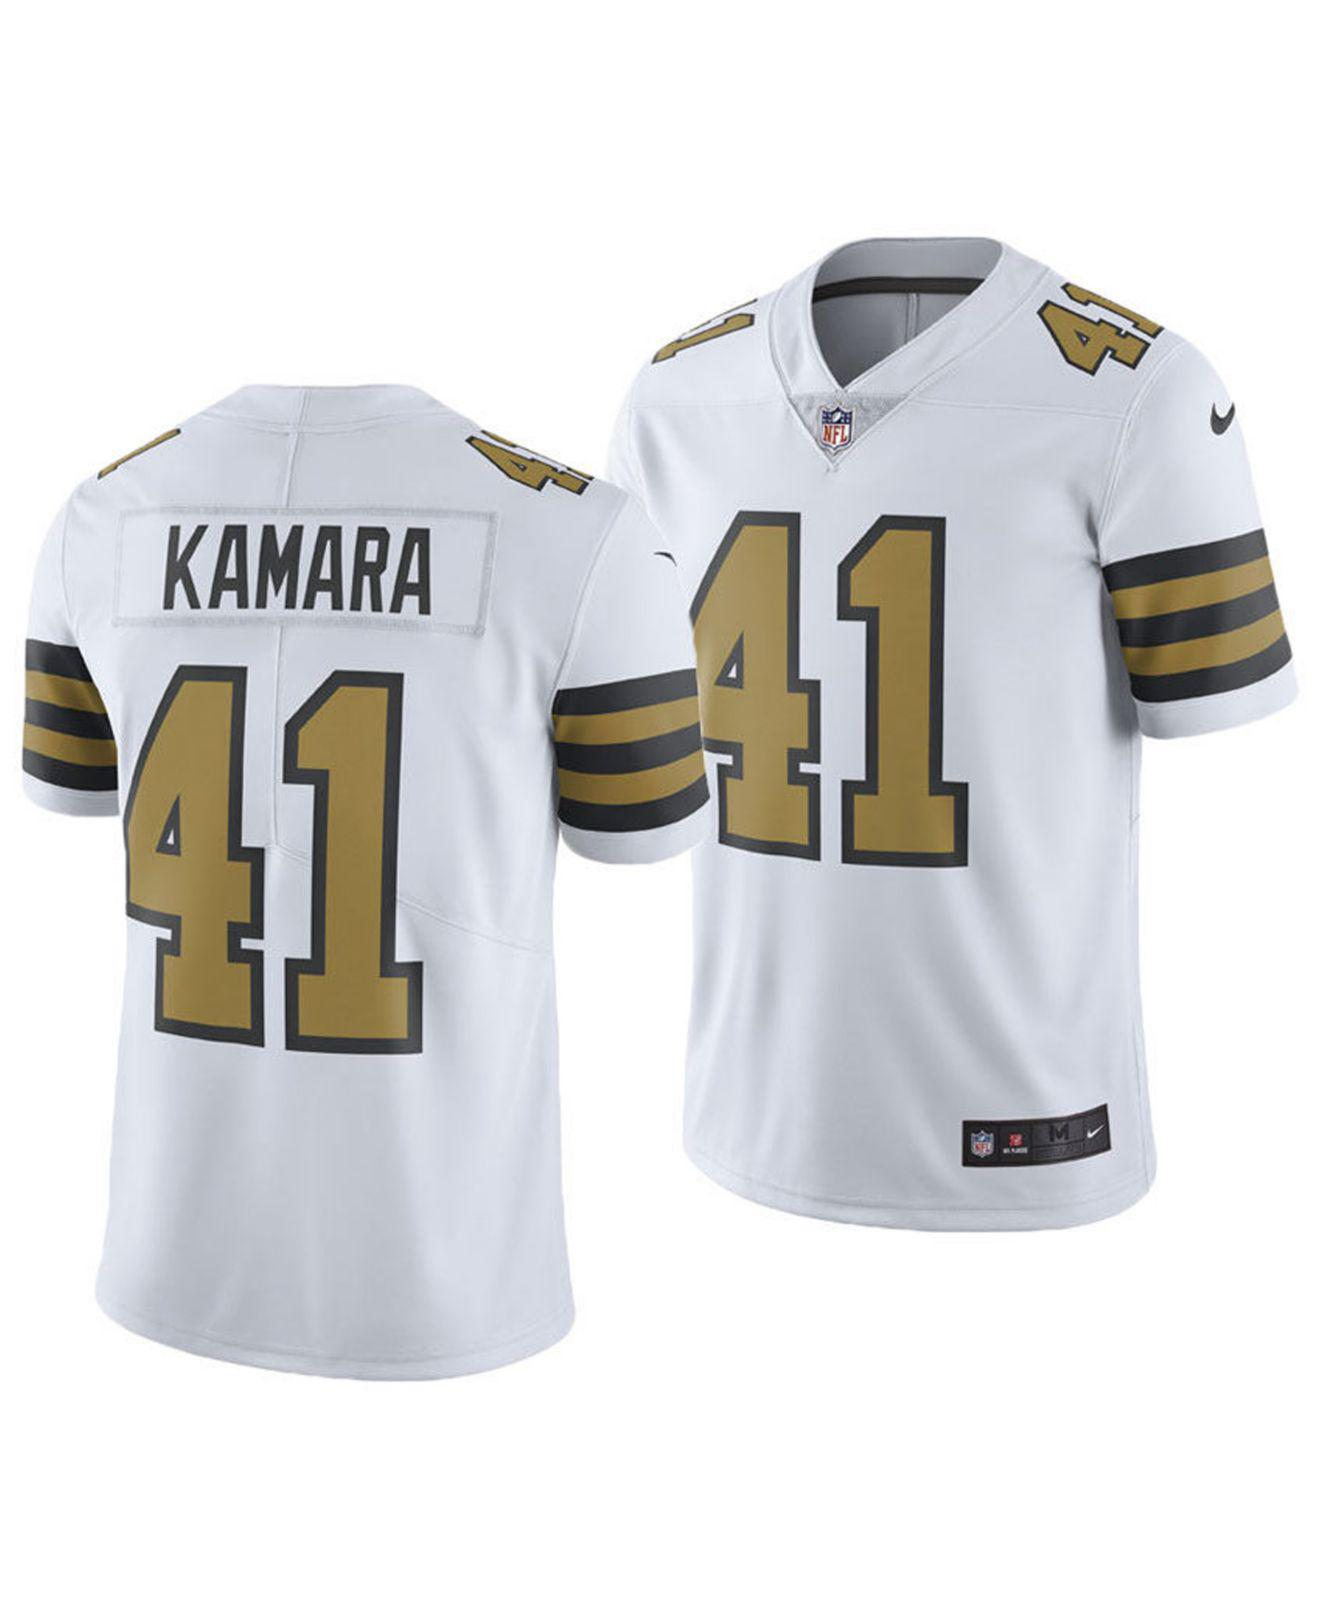 138d1c7c0aa Nike - White Alvin Kamara New Orleans Saints Limited Color Rush Jersey for  Men - Lyst. View fullscreen